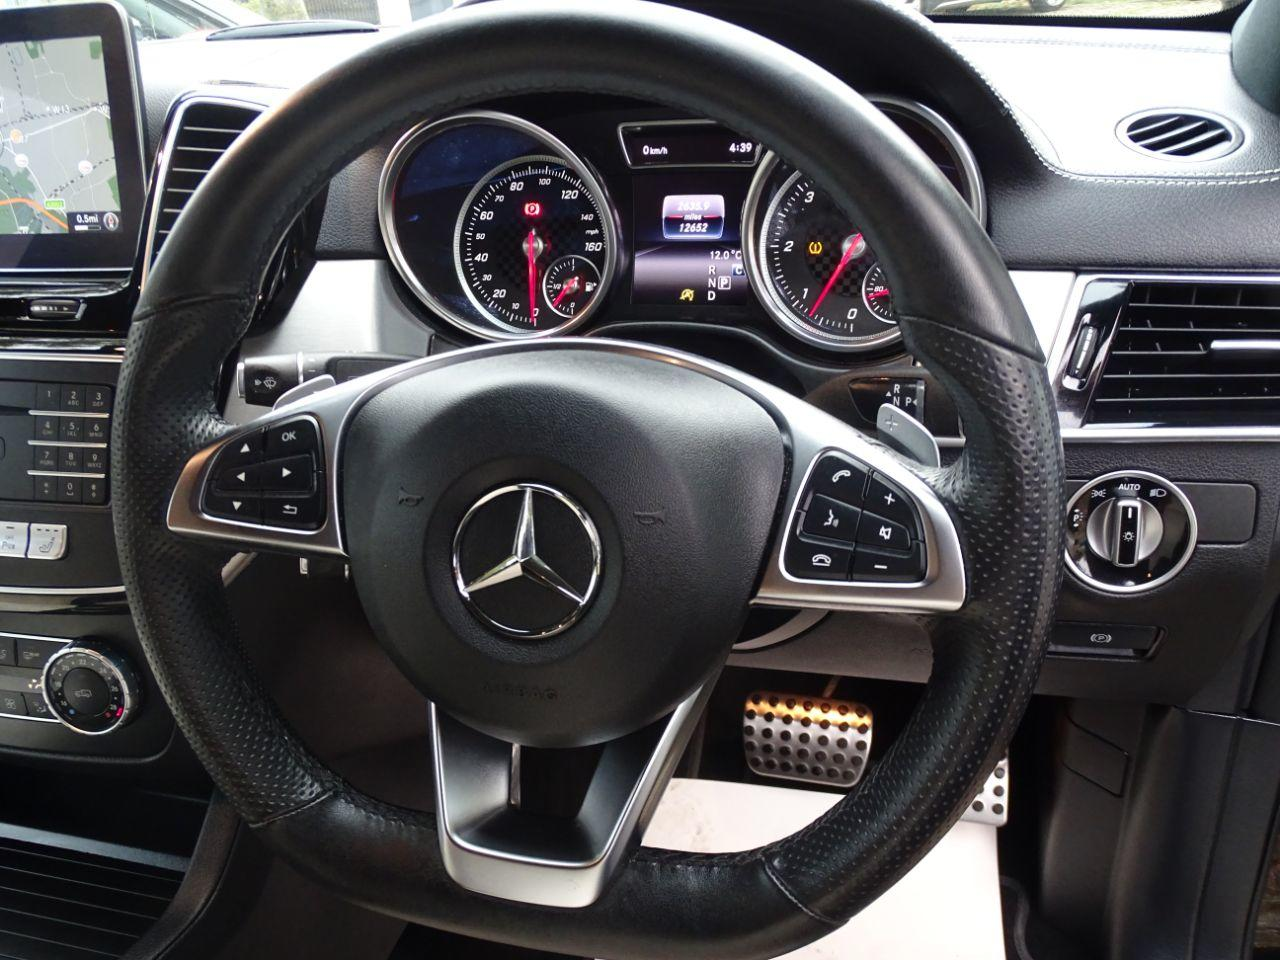 2019 Mercedes-Benz GLE Coupe 3.0 GLE 350d 4Matic AMG Night Edition 5dr 9G-Tronic